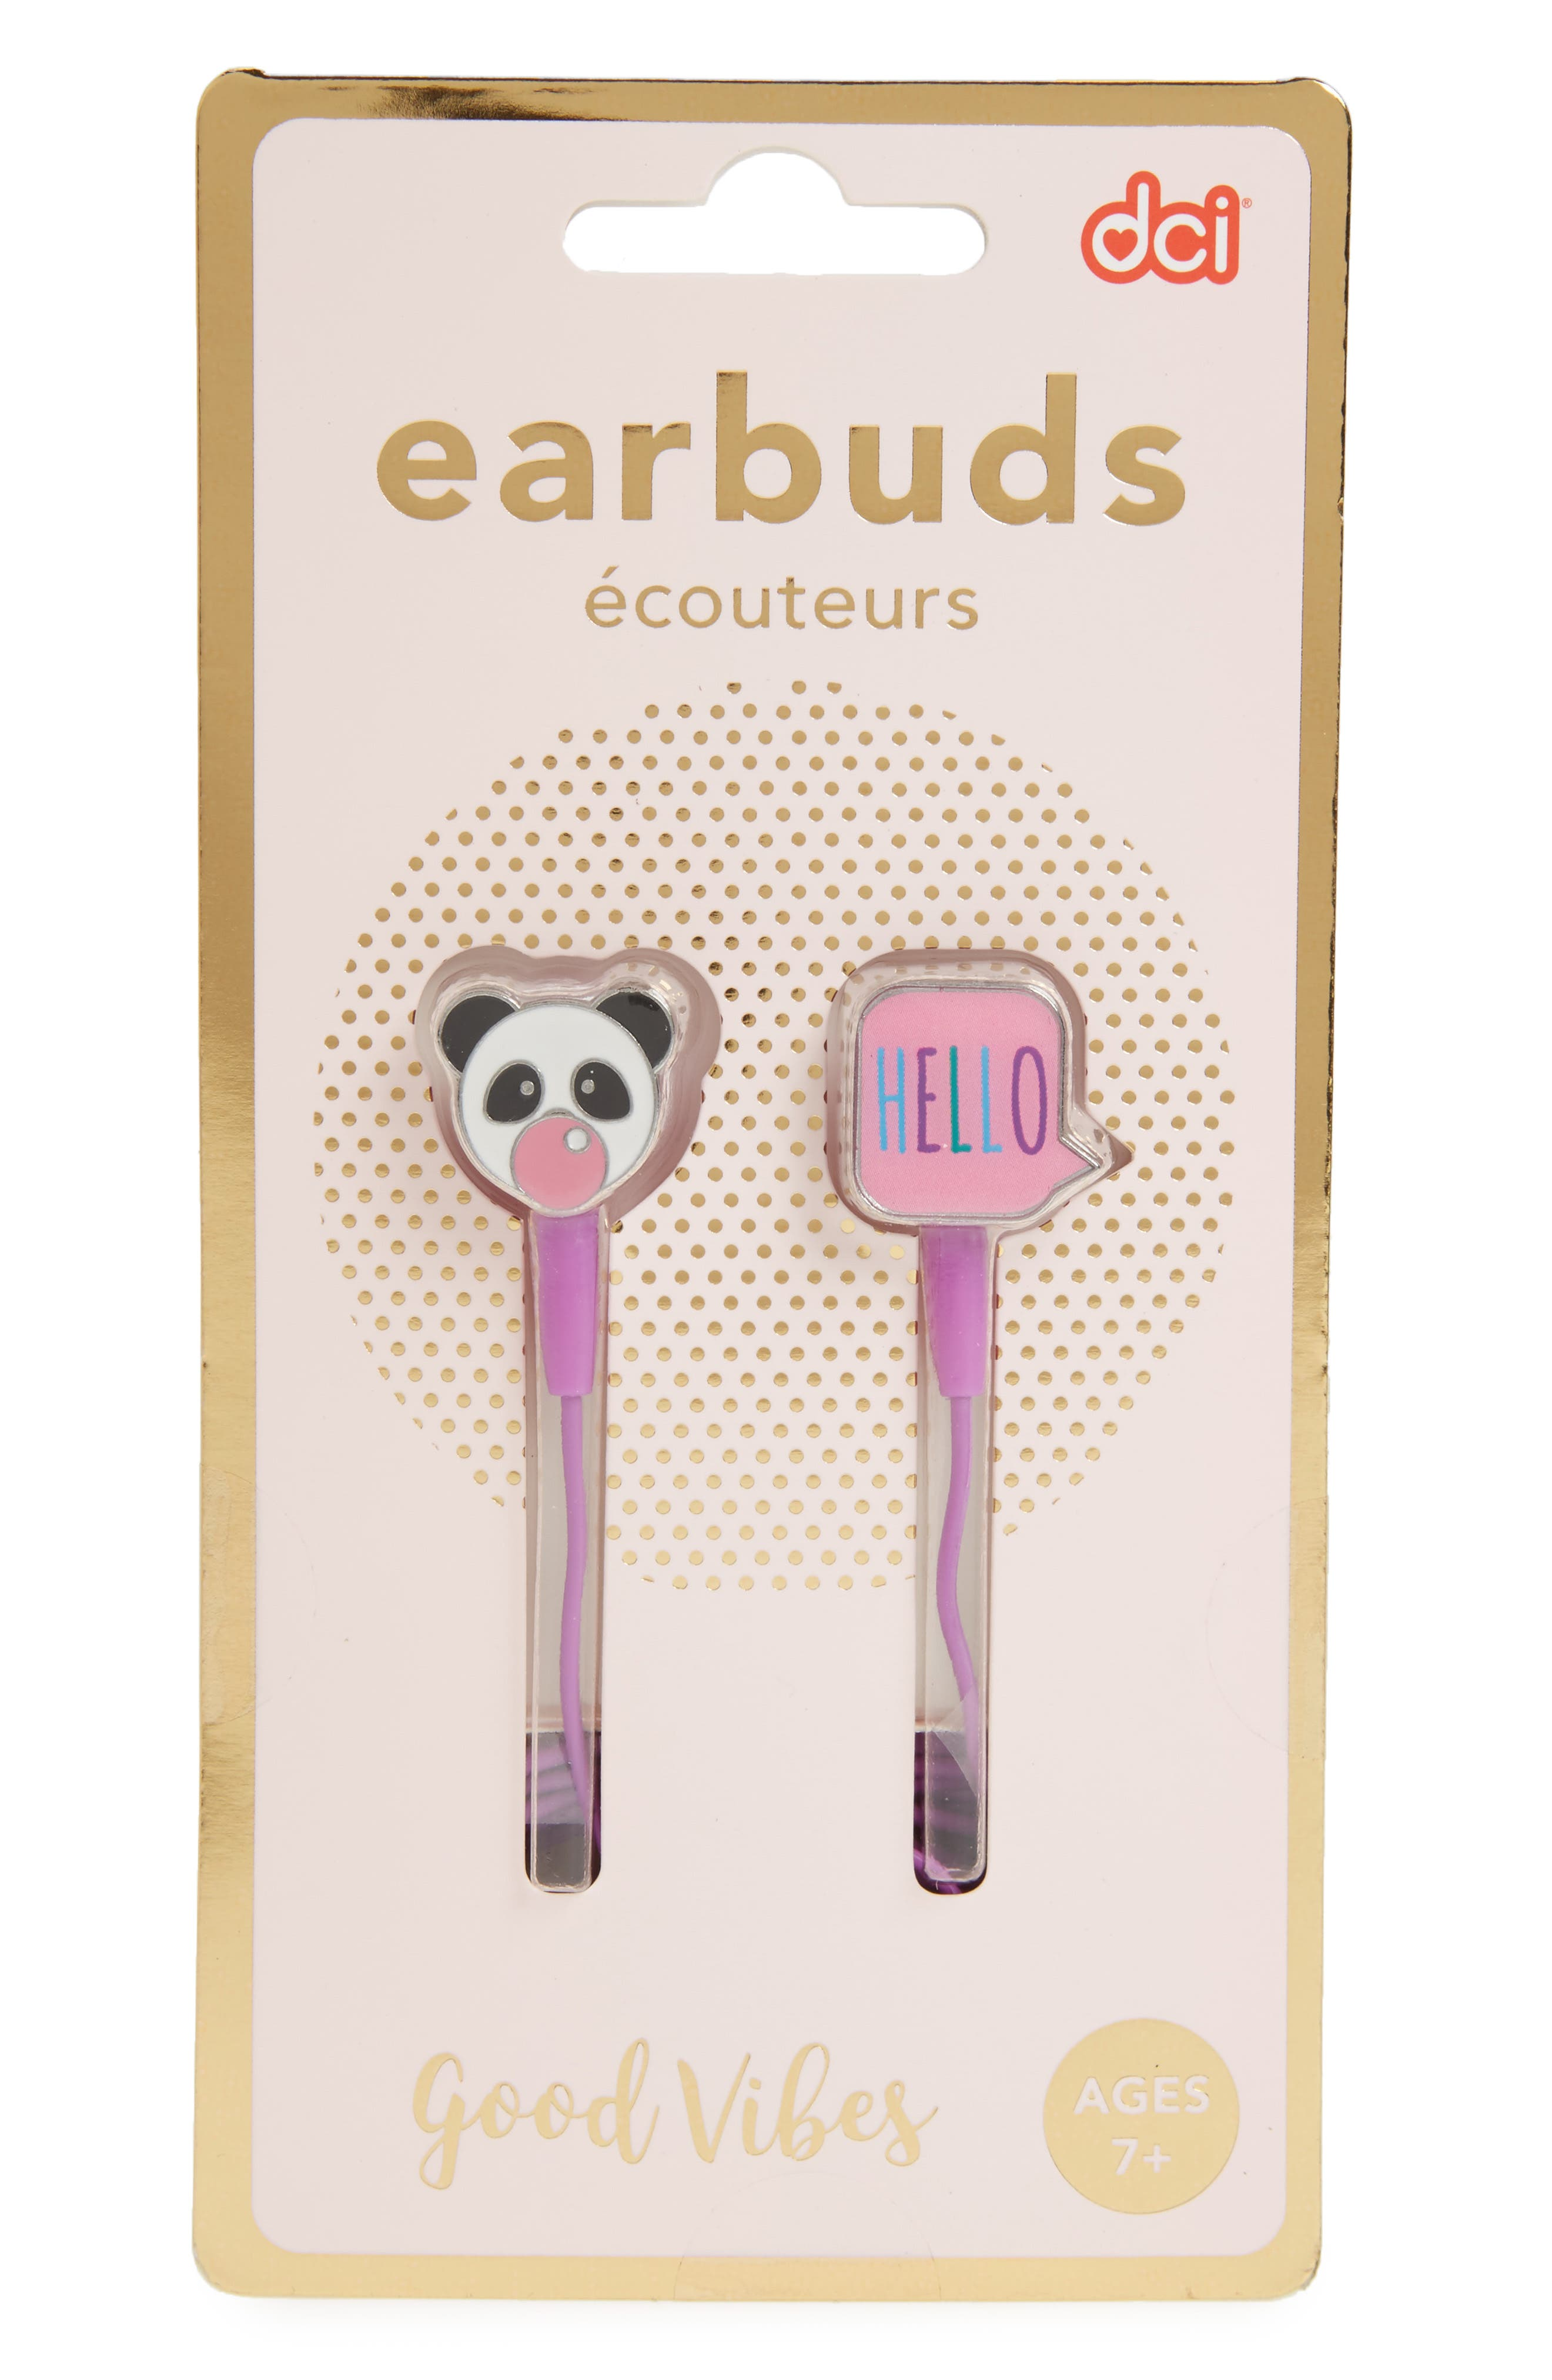 Good Vibes Earbuds,                             Alternate thumbnail 2, color,                             Pink Multi